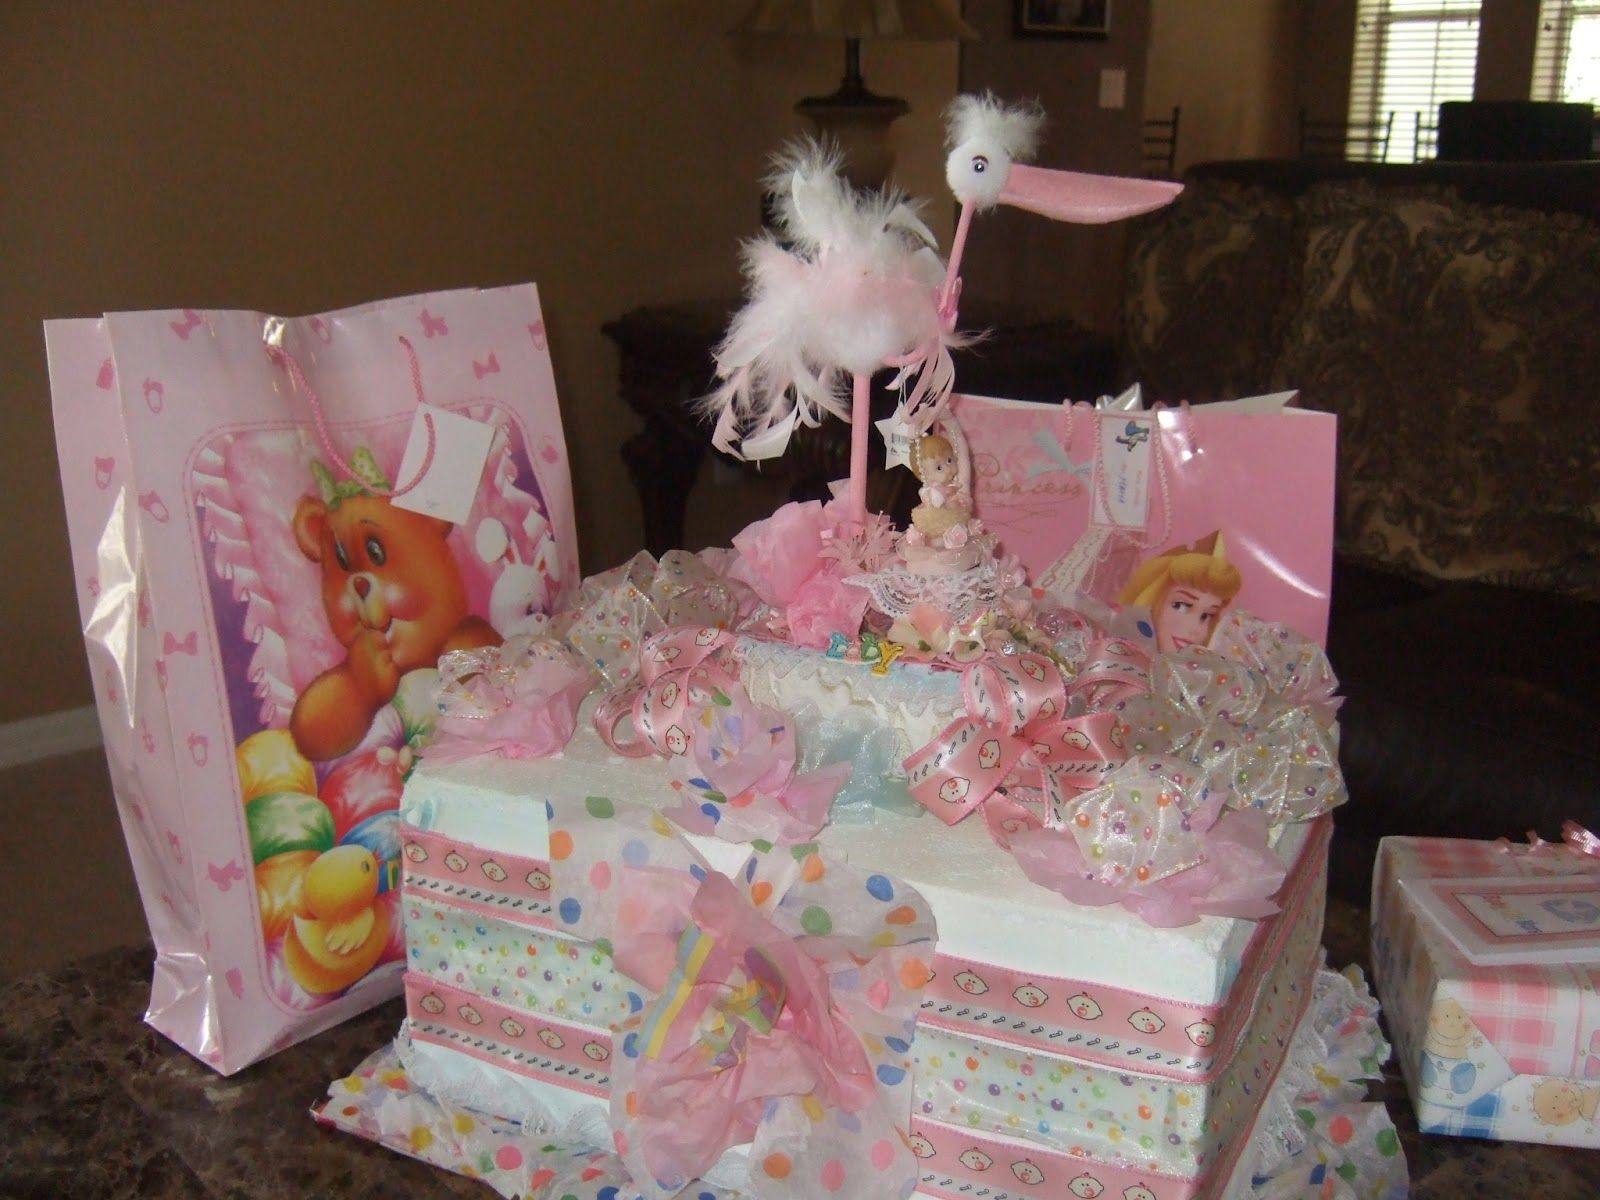 pinterest decorating baby shower ideas | here are some photos of the baby shower decorations ...